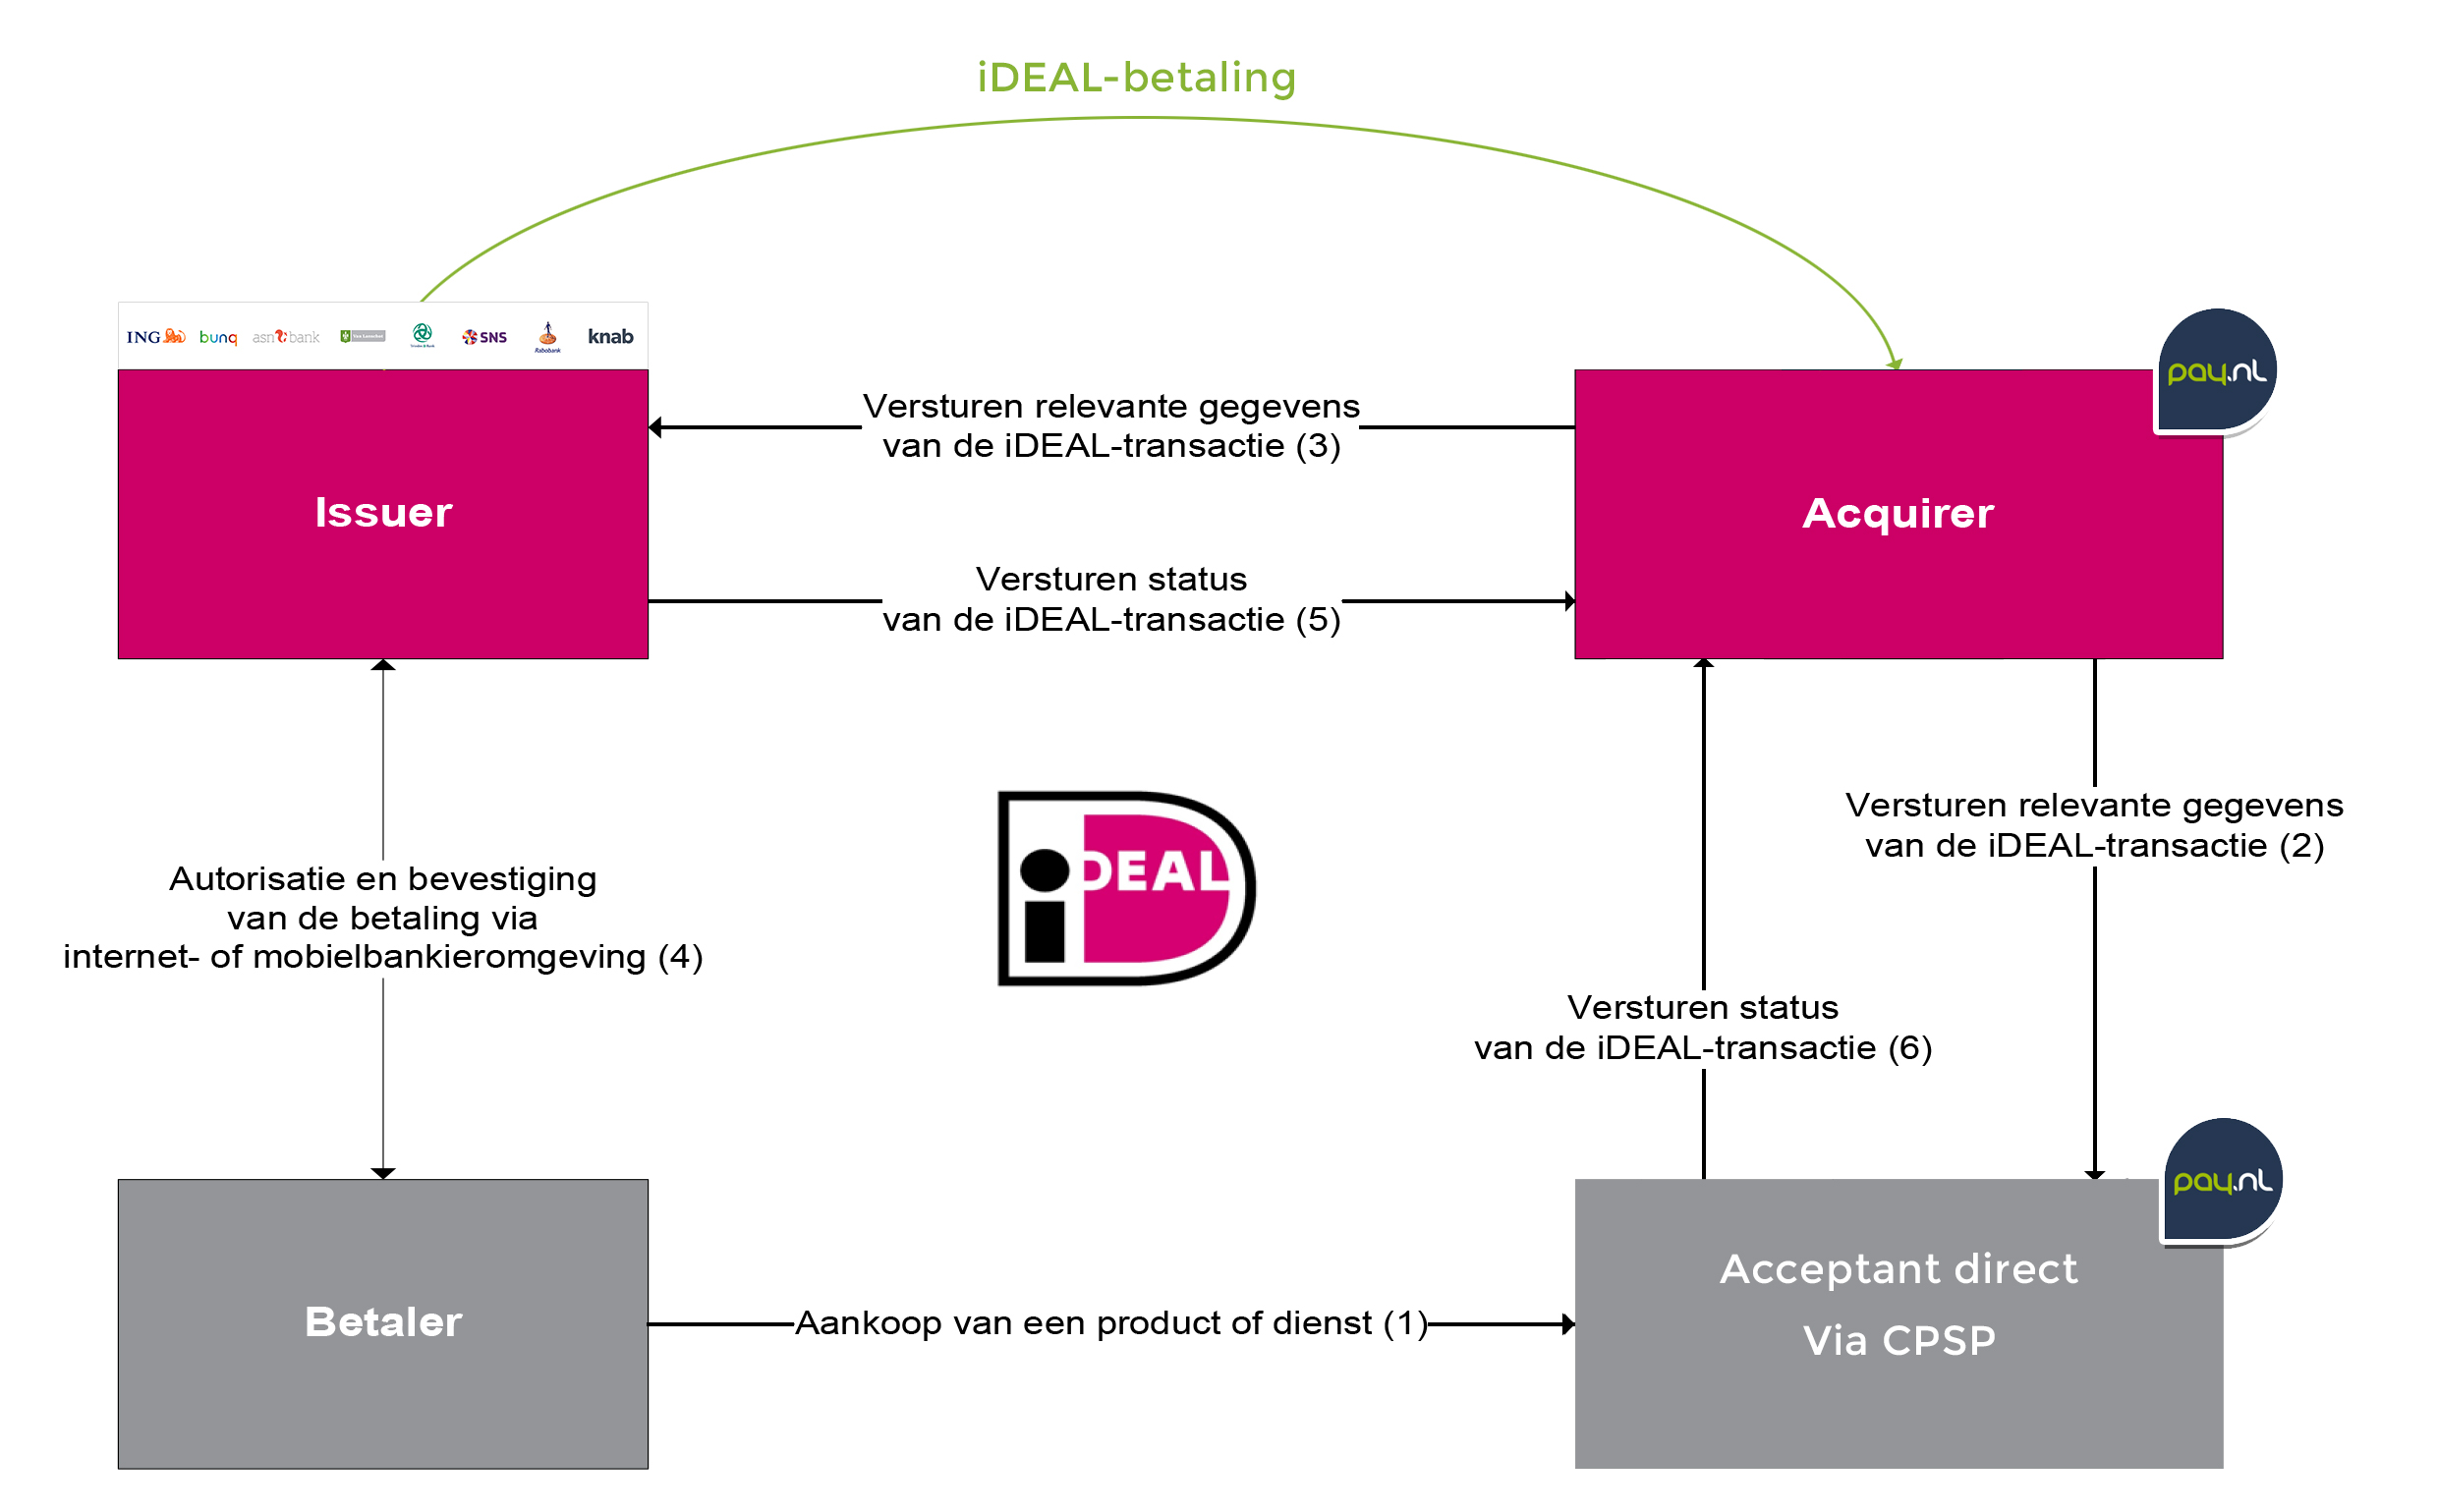 Pay.nl iDEAL acquirer